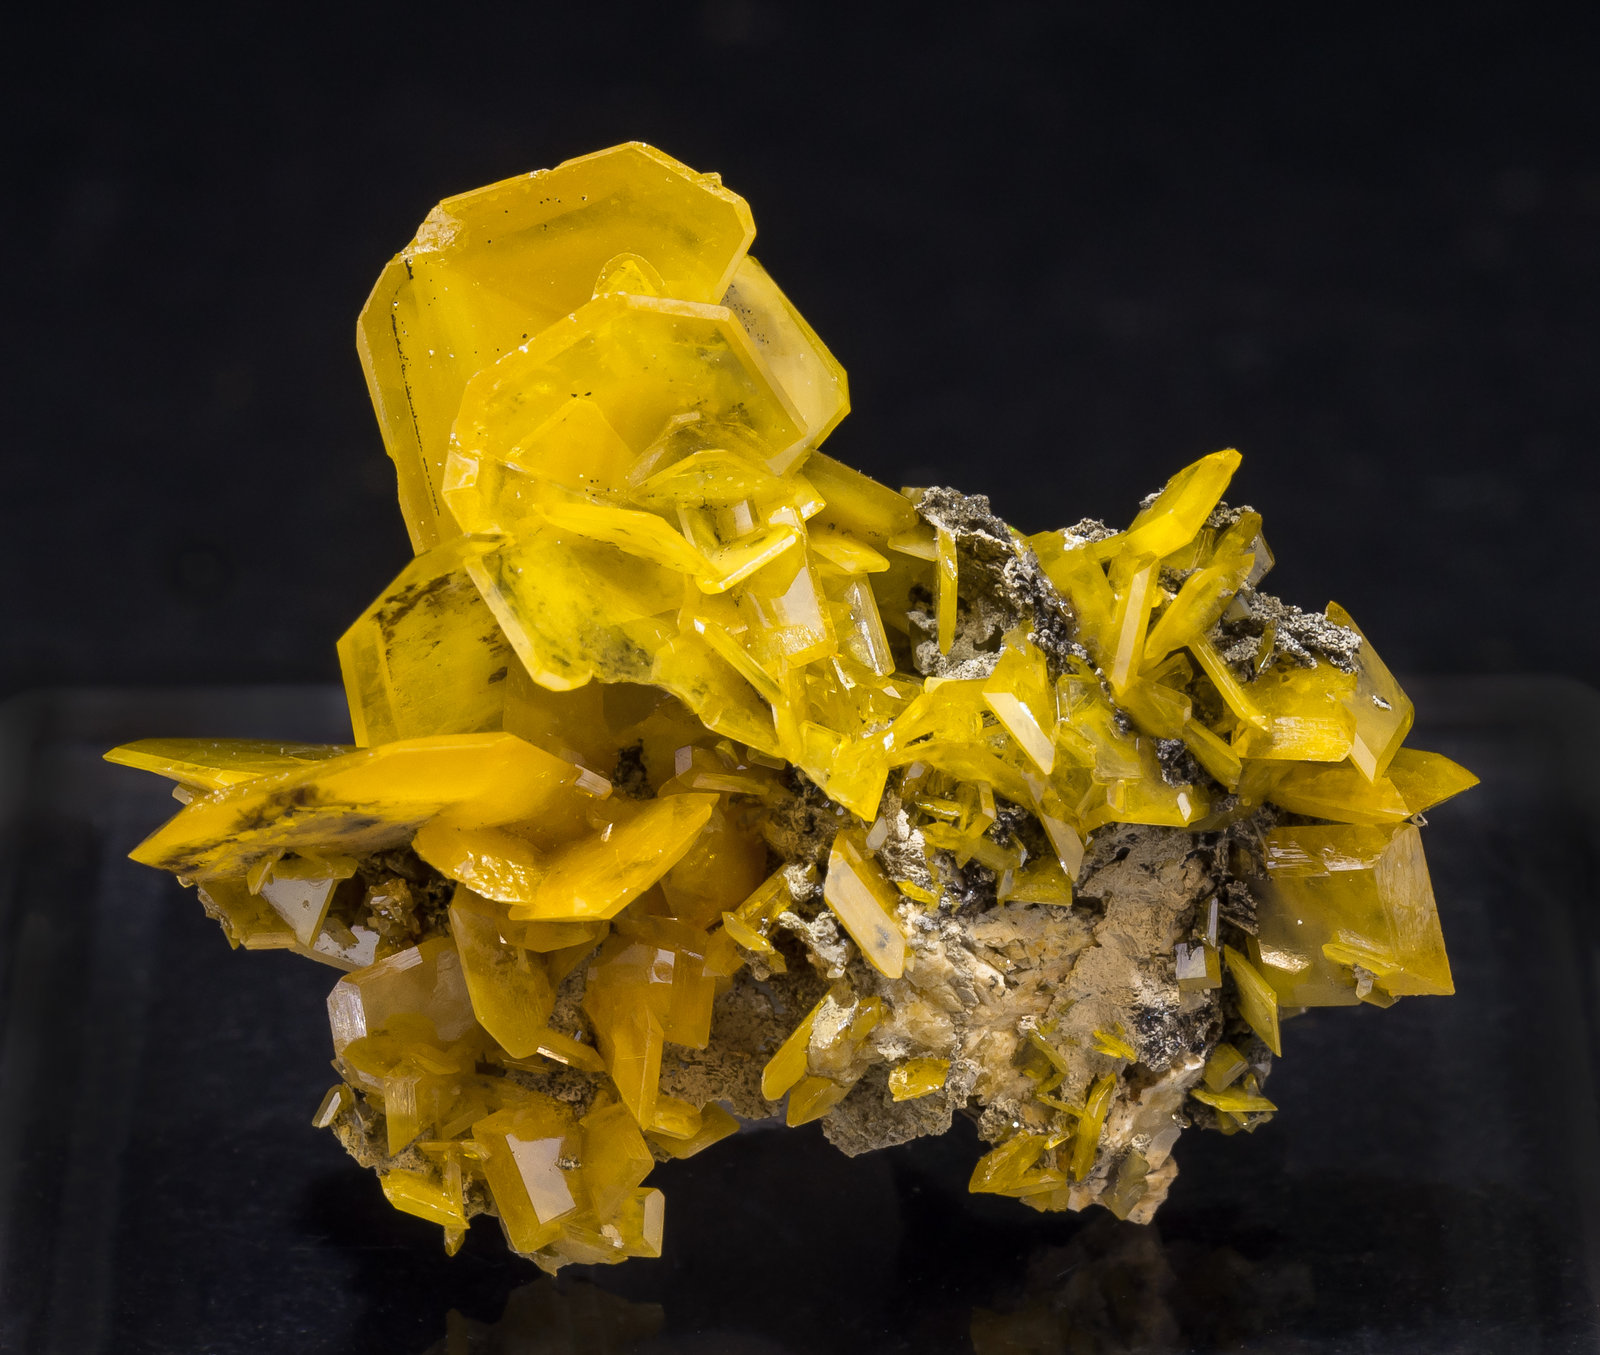 specimens/s_imagesAM1/Wulfenite-EE14AM1f.jpg